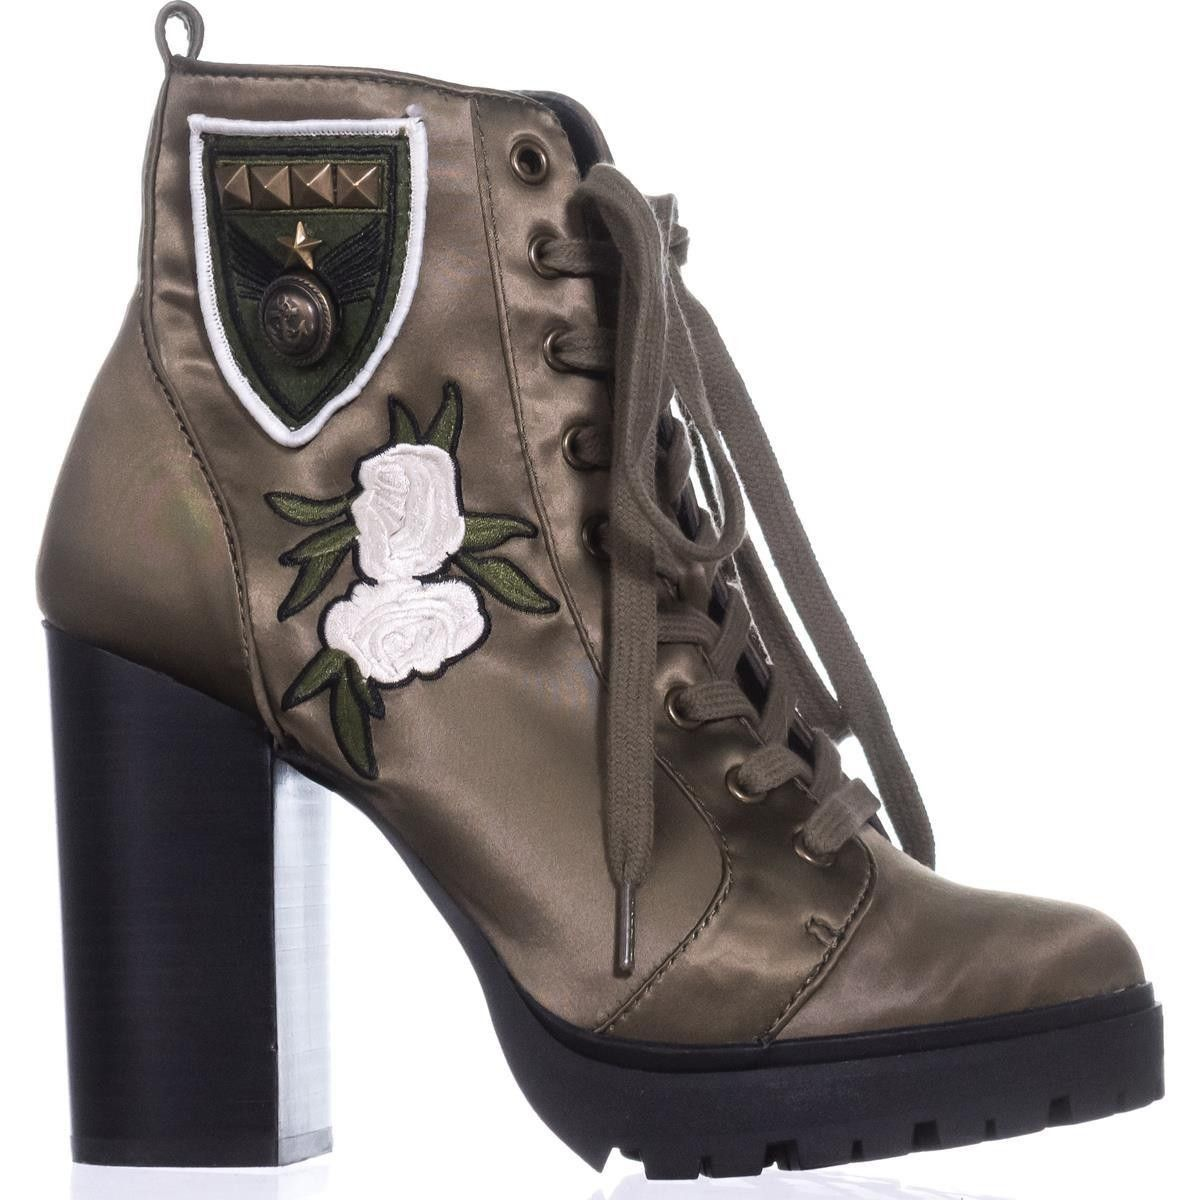 721bb331358 Steve Madden Laurie Casual Ankle Boots